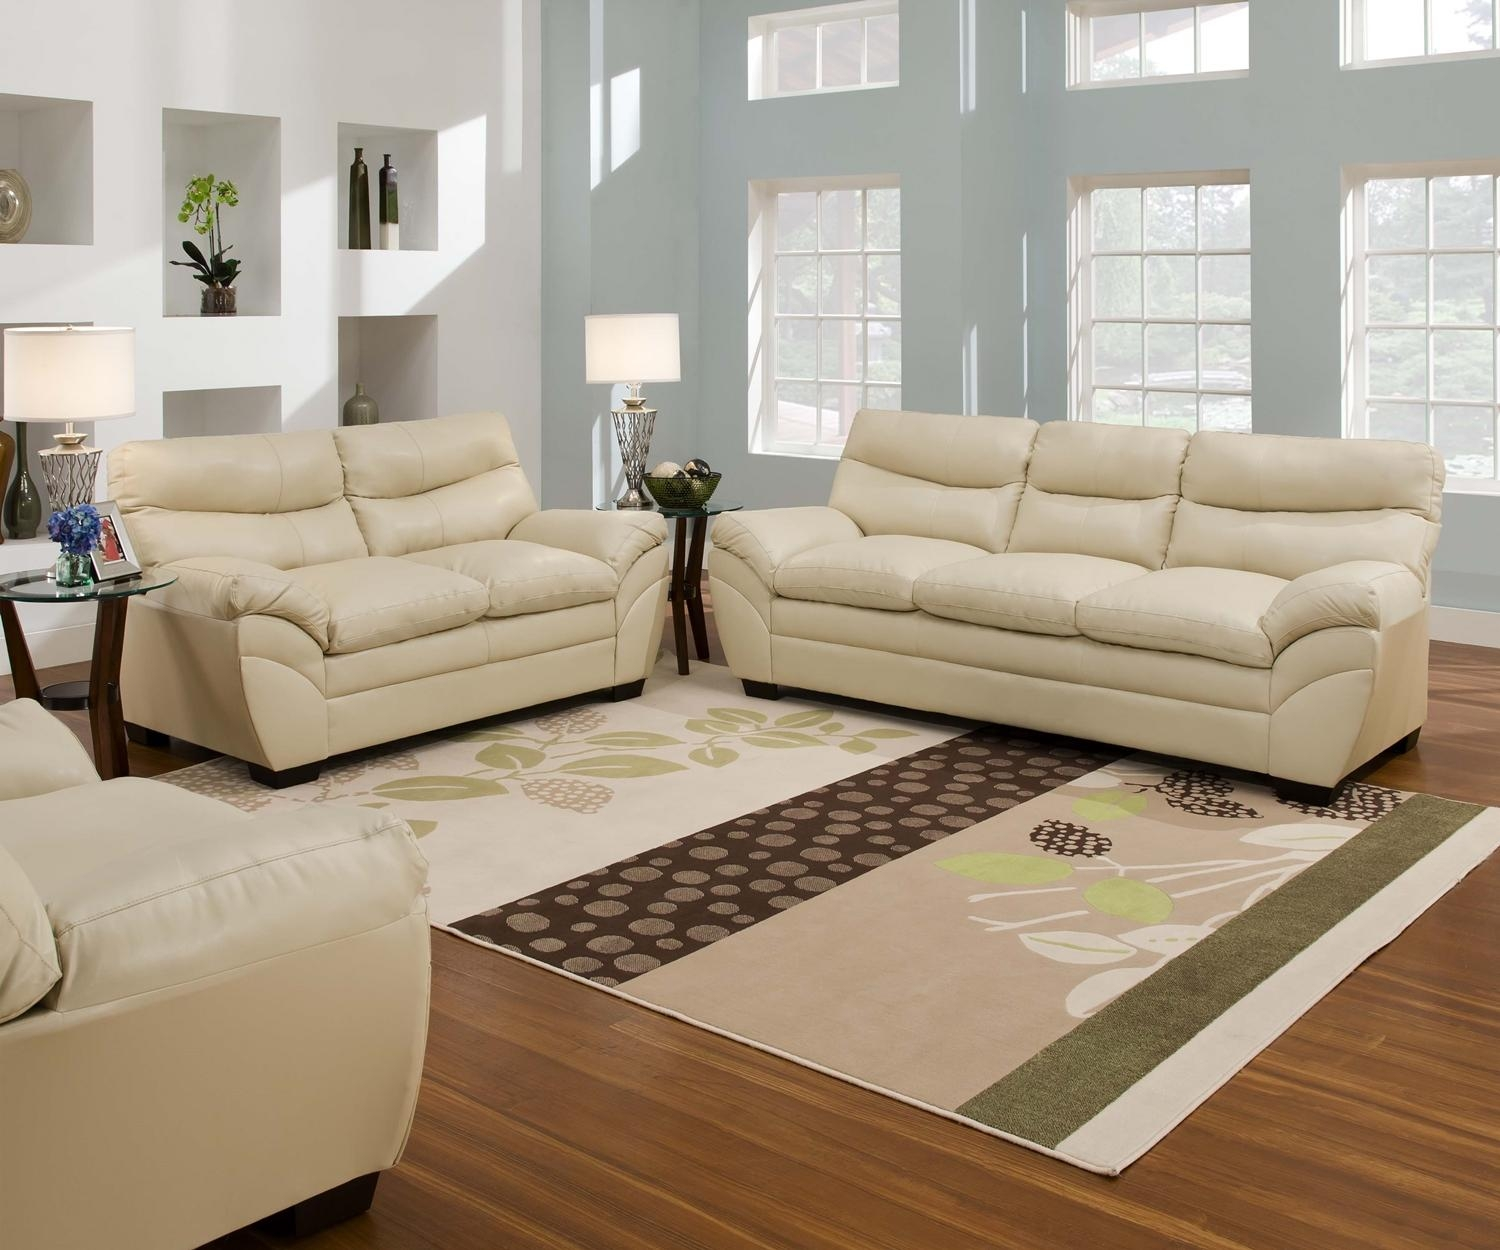 20 Inspirations Cream Colored Sofas Sofa Ideas